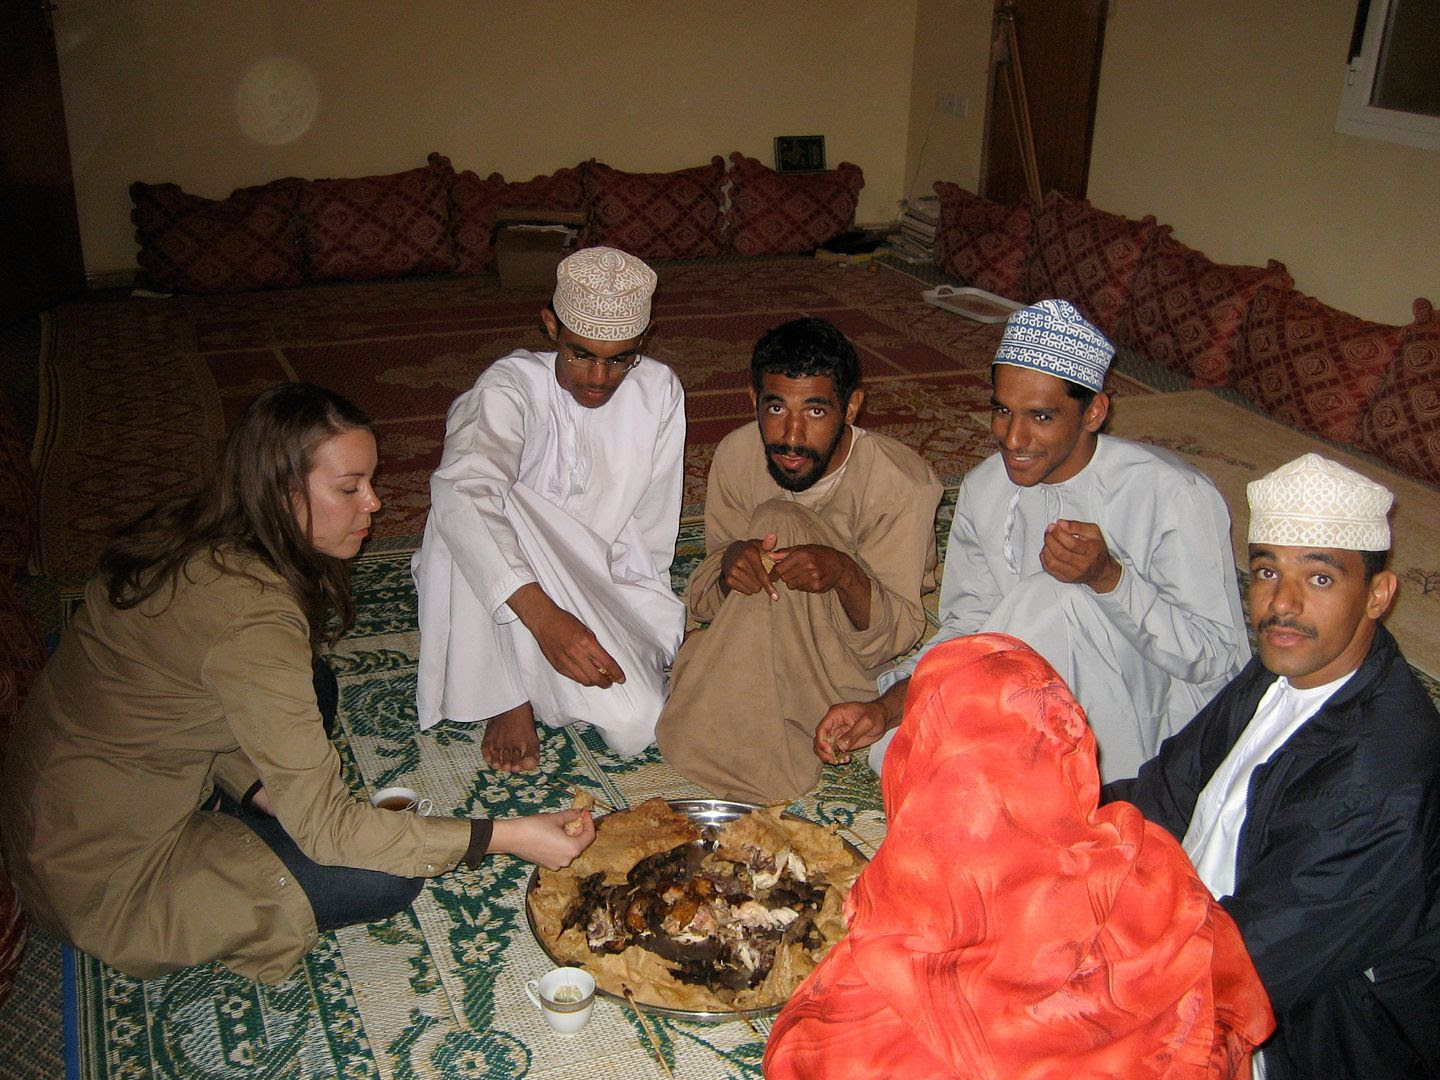 2012.01.03, Eating a traditional Omani meal of roasted lamb with a flat pancake like bread (Ibri, Oman)